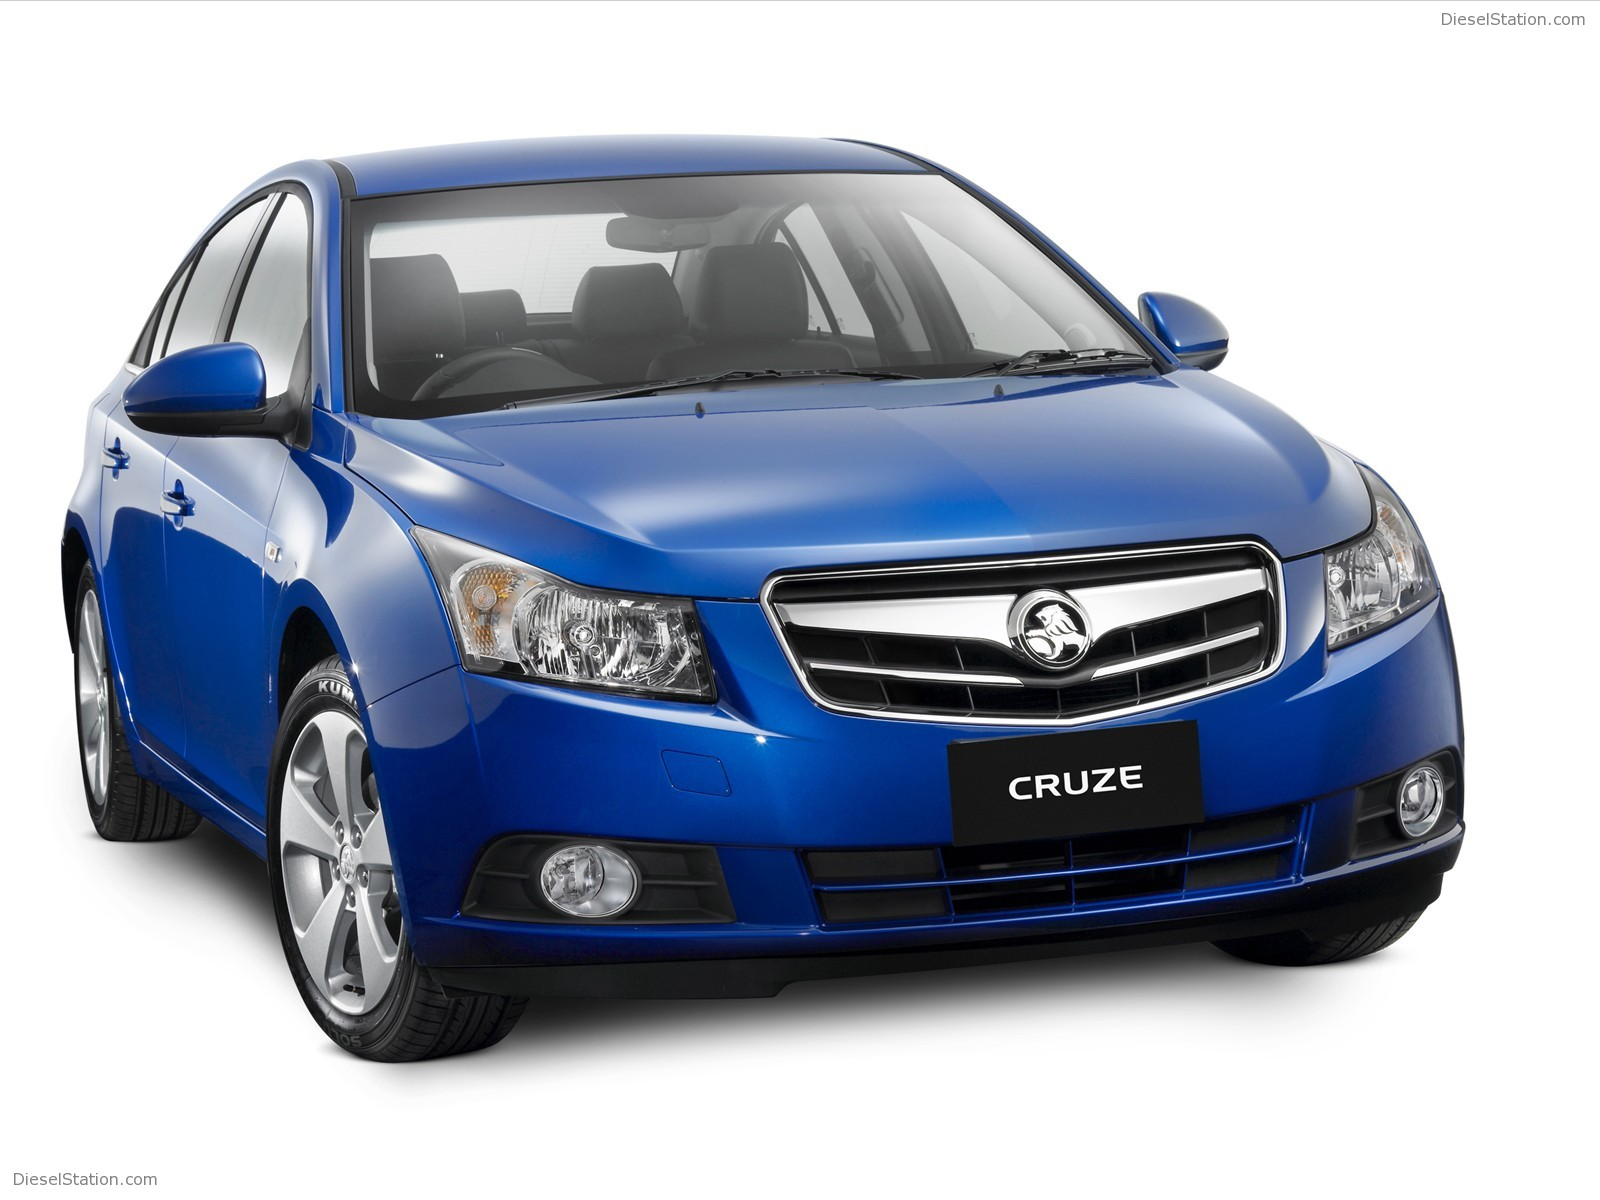 Holden cruze photo - 1